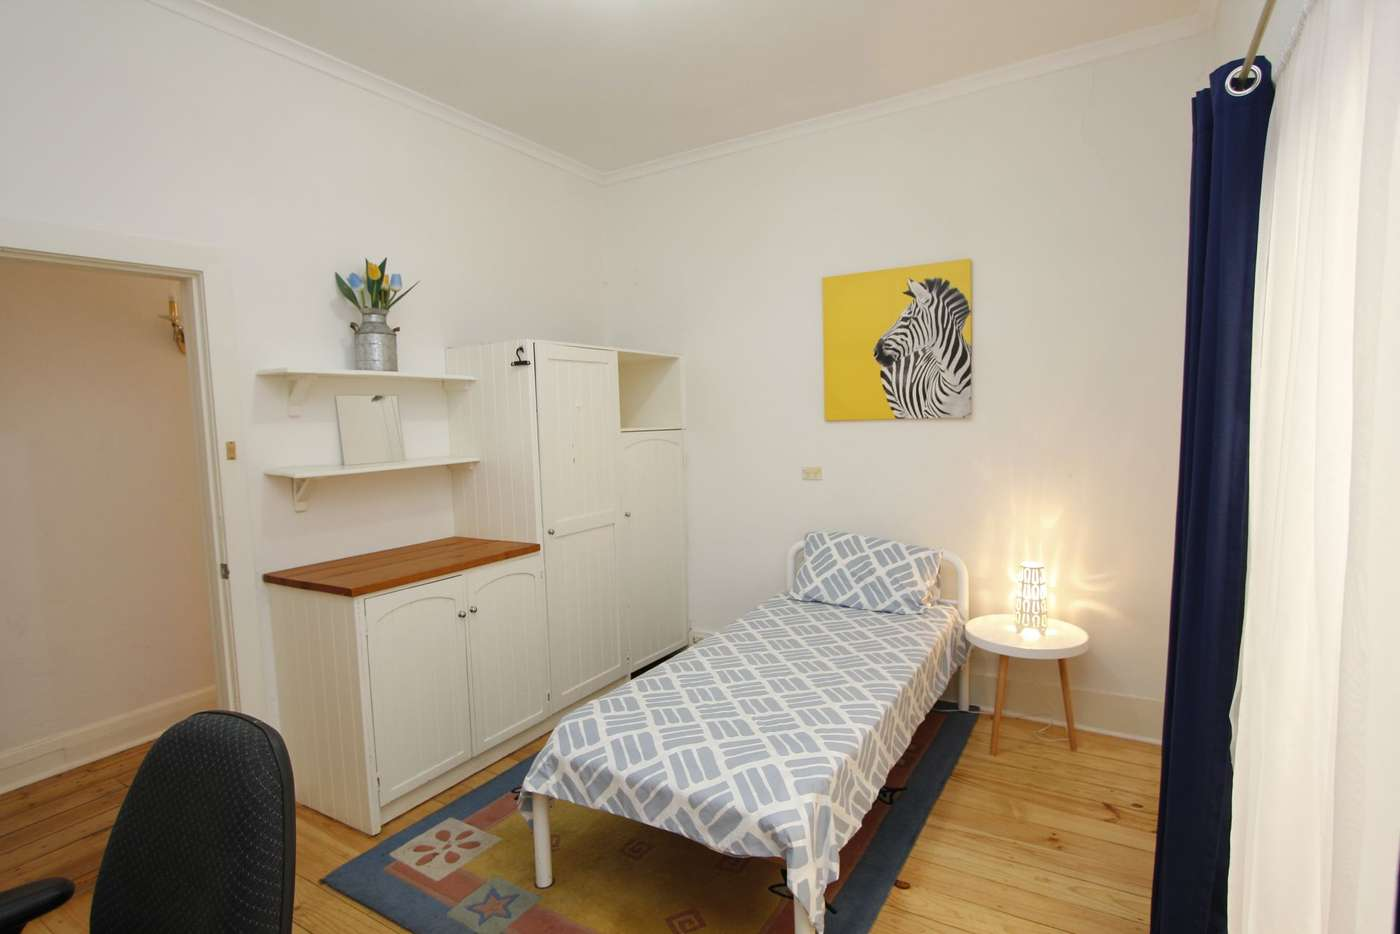 Seventh view of Homely house listing, 1/14 Harriett St, Adelaide SA 5000